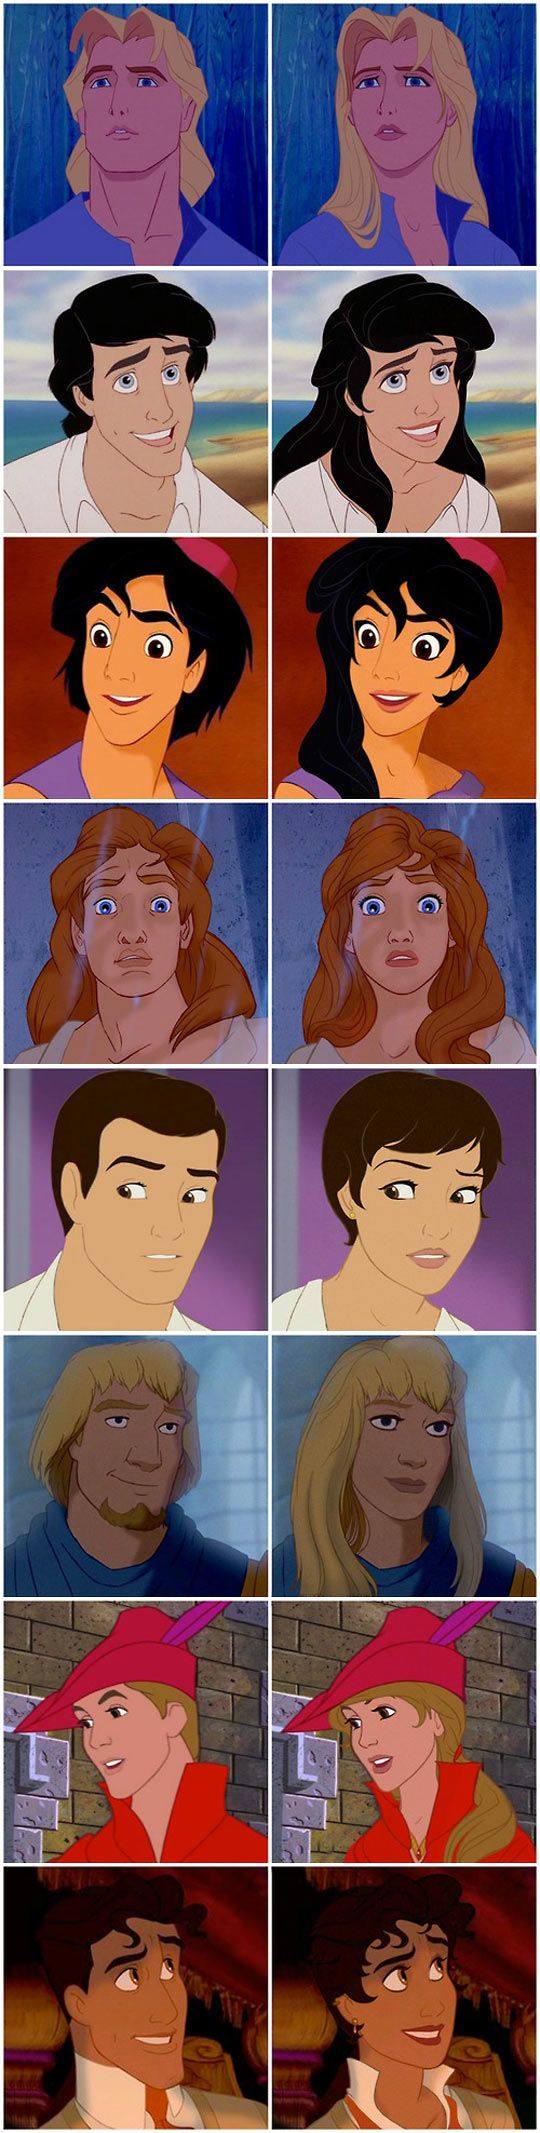 Man vs woman Disney characters xD loved this